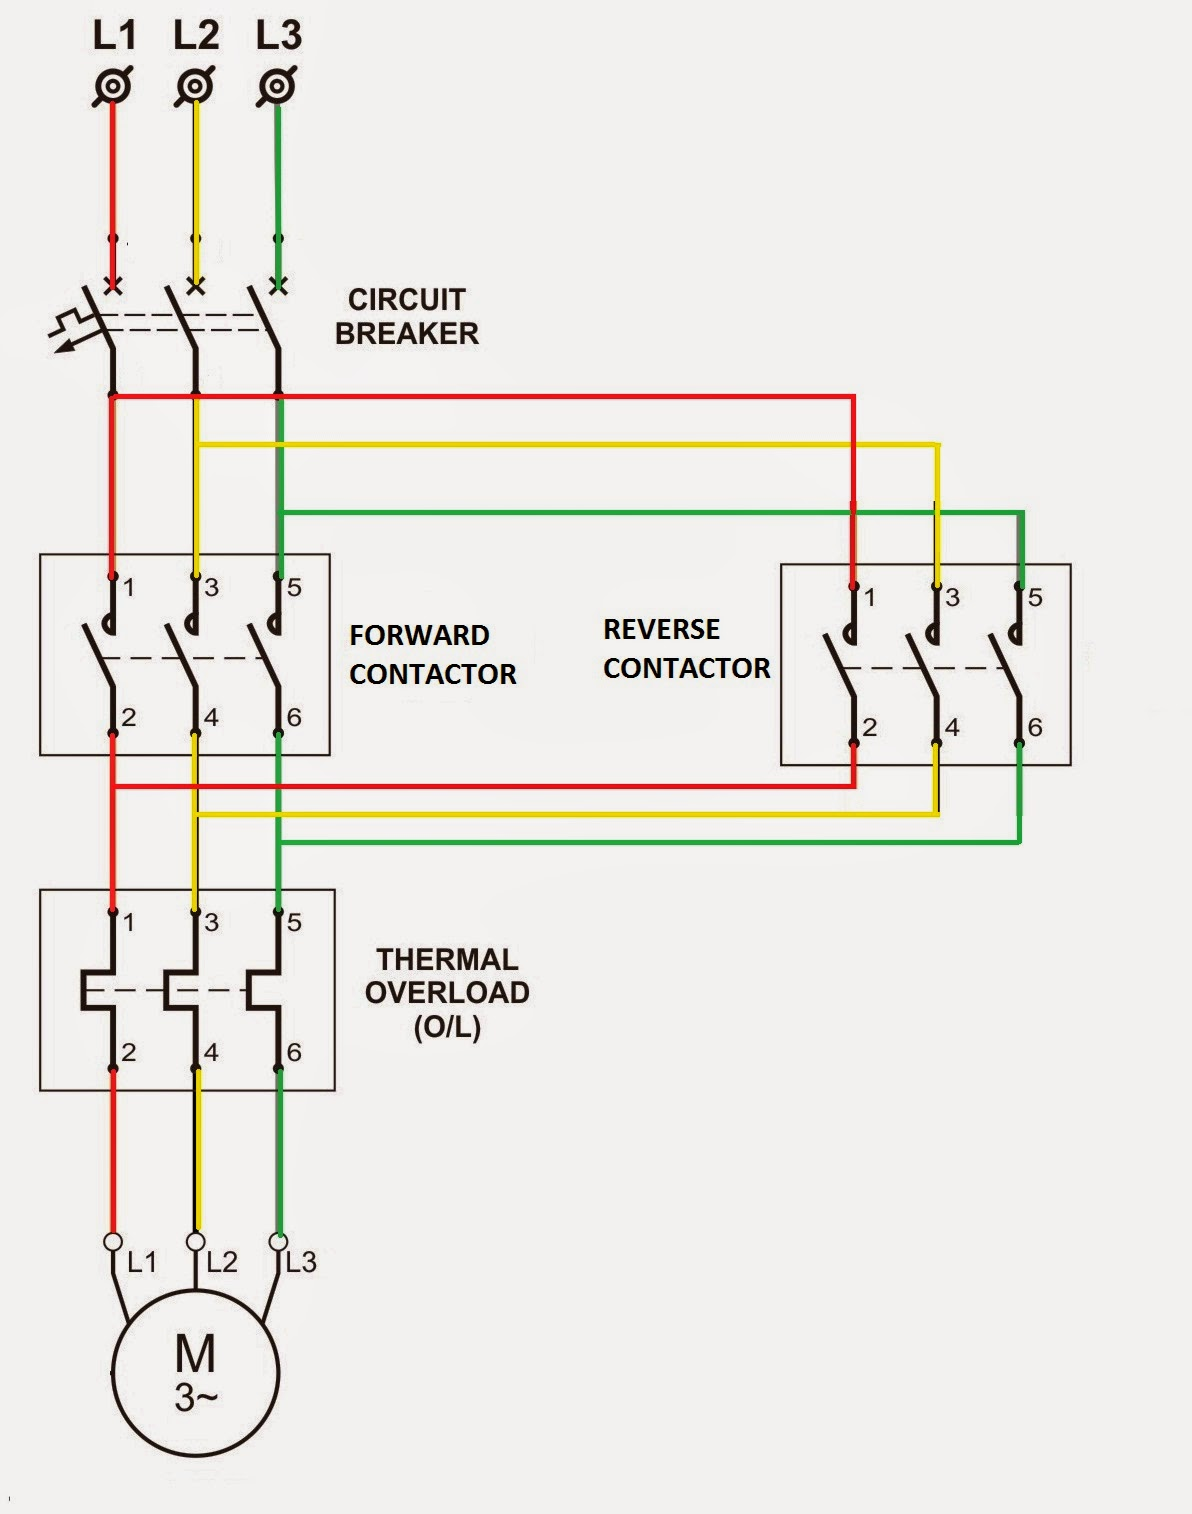 phase motor forward reverse wiring diagrams html with Overload Relay Working Principle And on Air  pressor Motor Starter Wiring together with 3 Phase Motor Contactor Wiring Diagram also 3 Phase Forward And Reverse Wiring Diagram additionally Ask Renewable Energy Guru Lenr Aka Cold furthermore Relay Contactor With Push Button On Off.